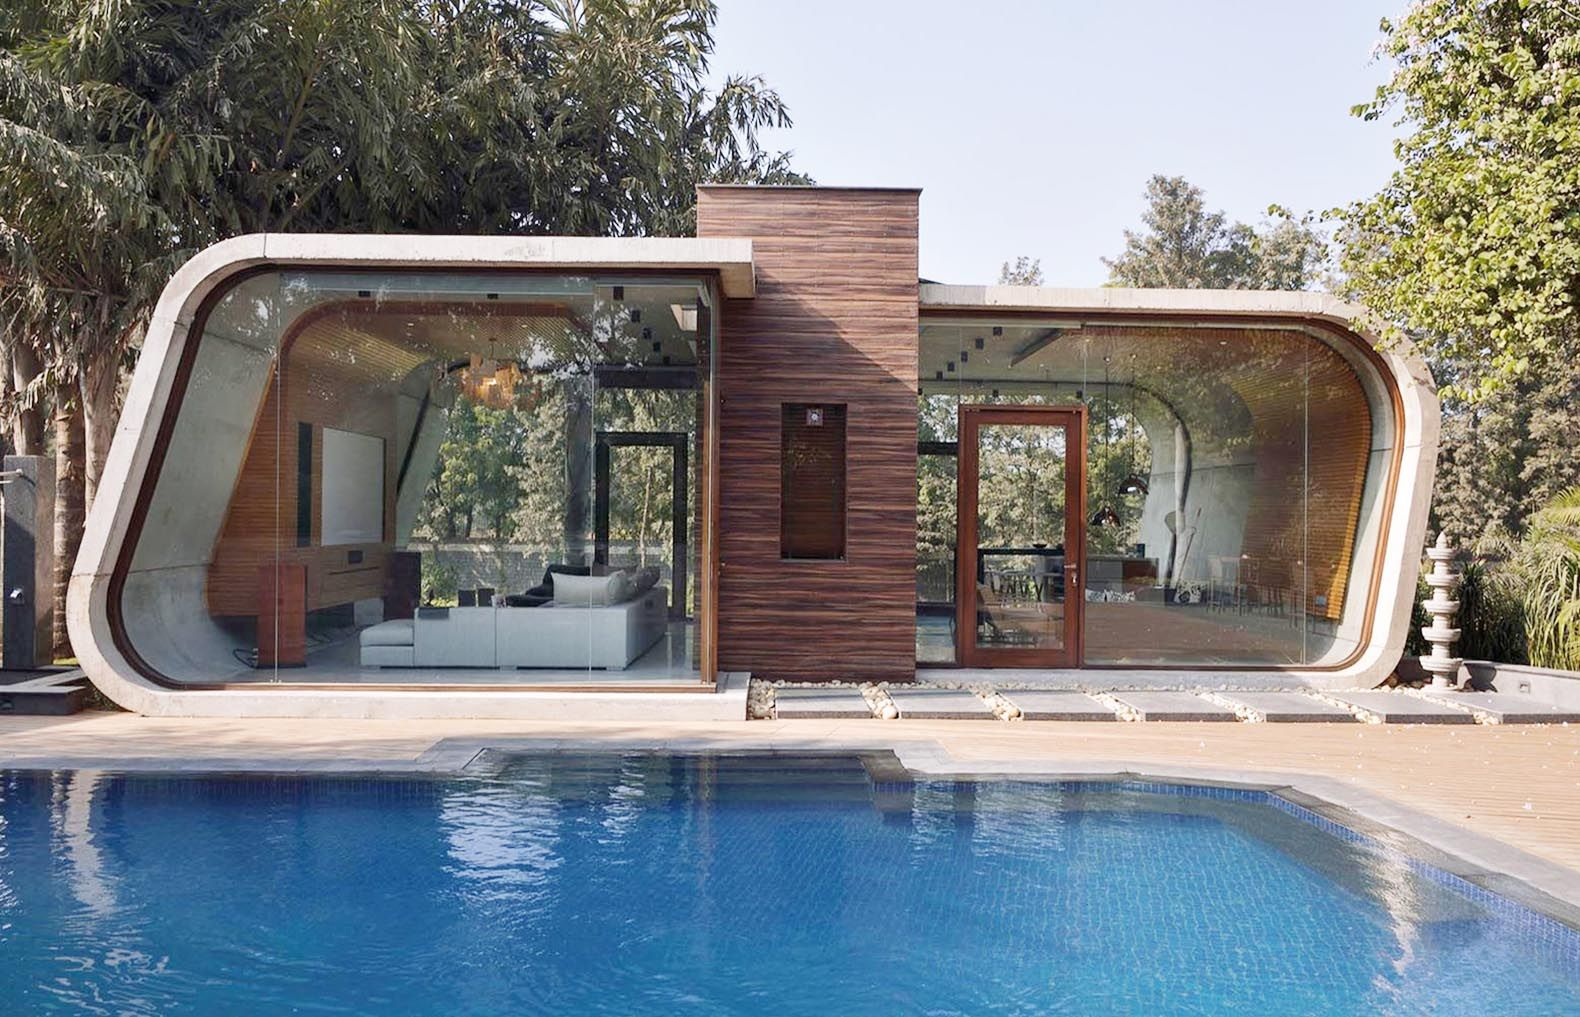 Pool House By 42mm Architecture Prefab Pool House Modern Pool House Pool House Designs